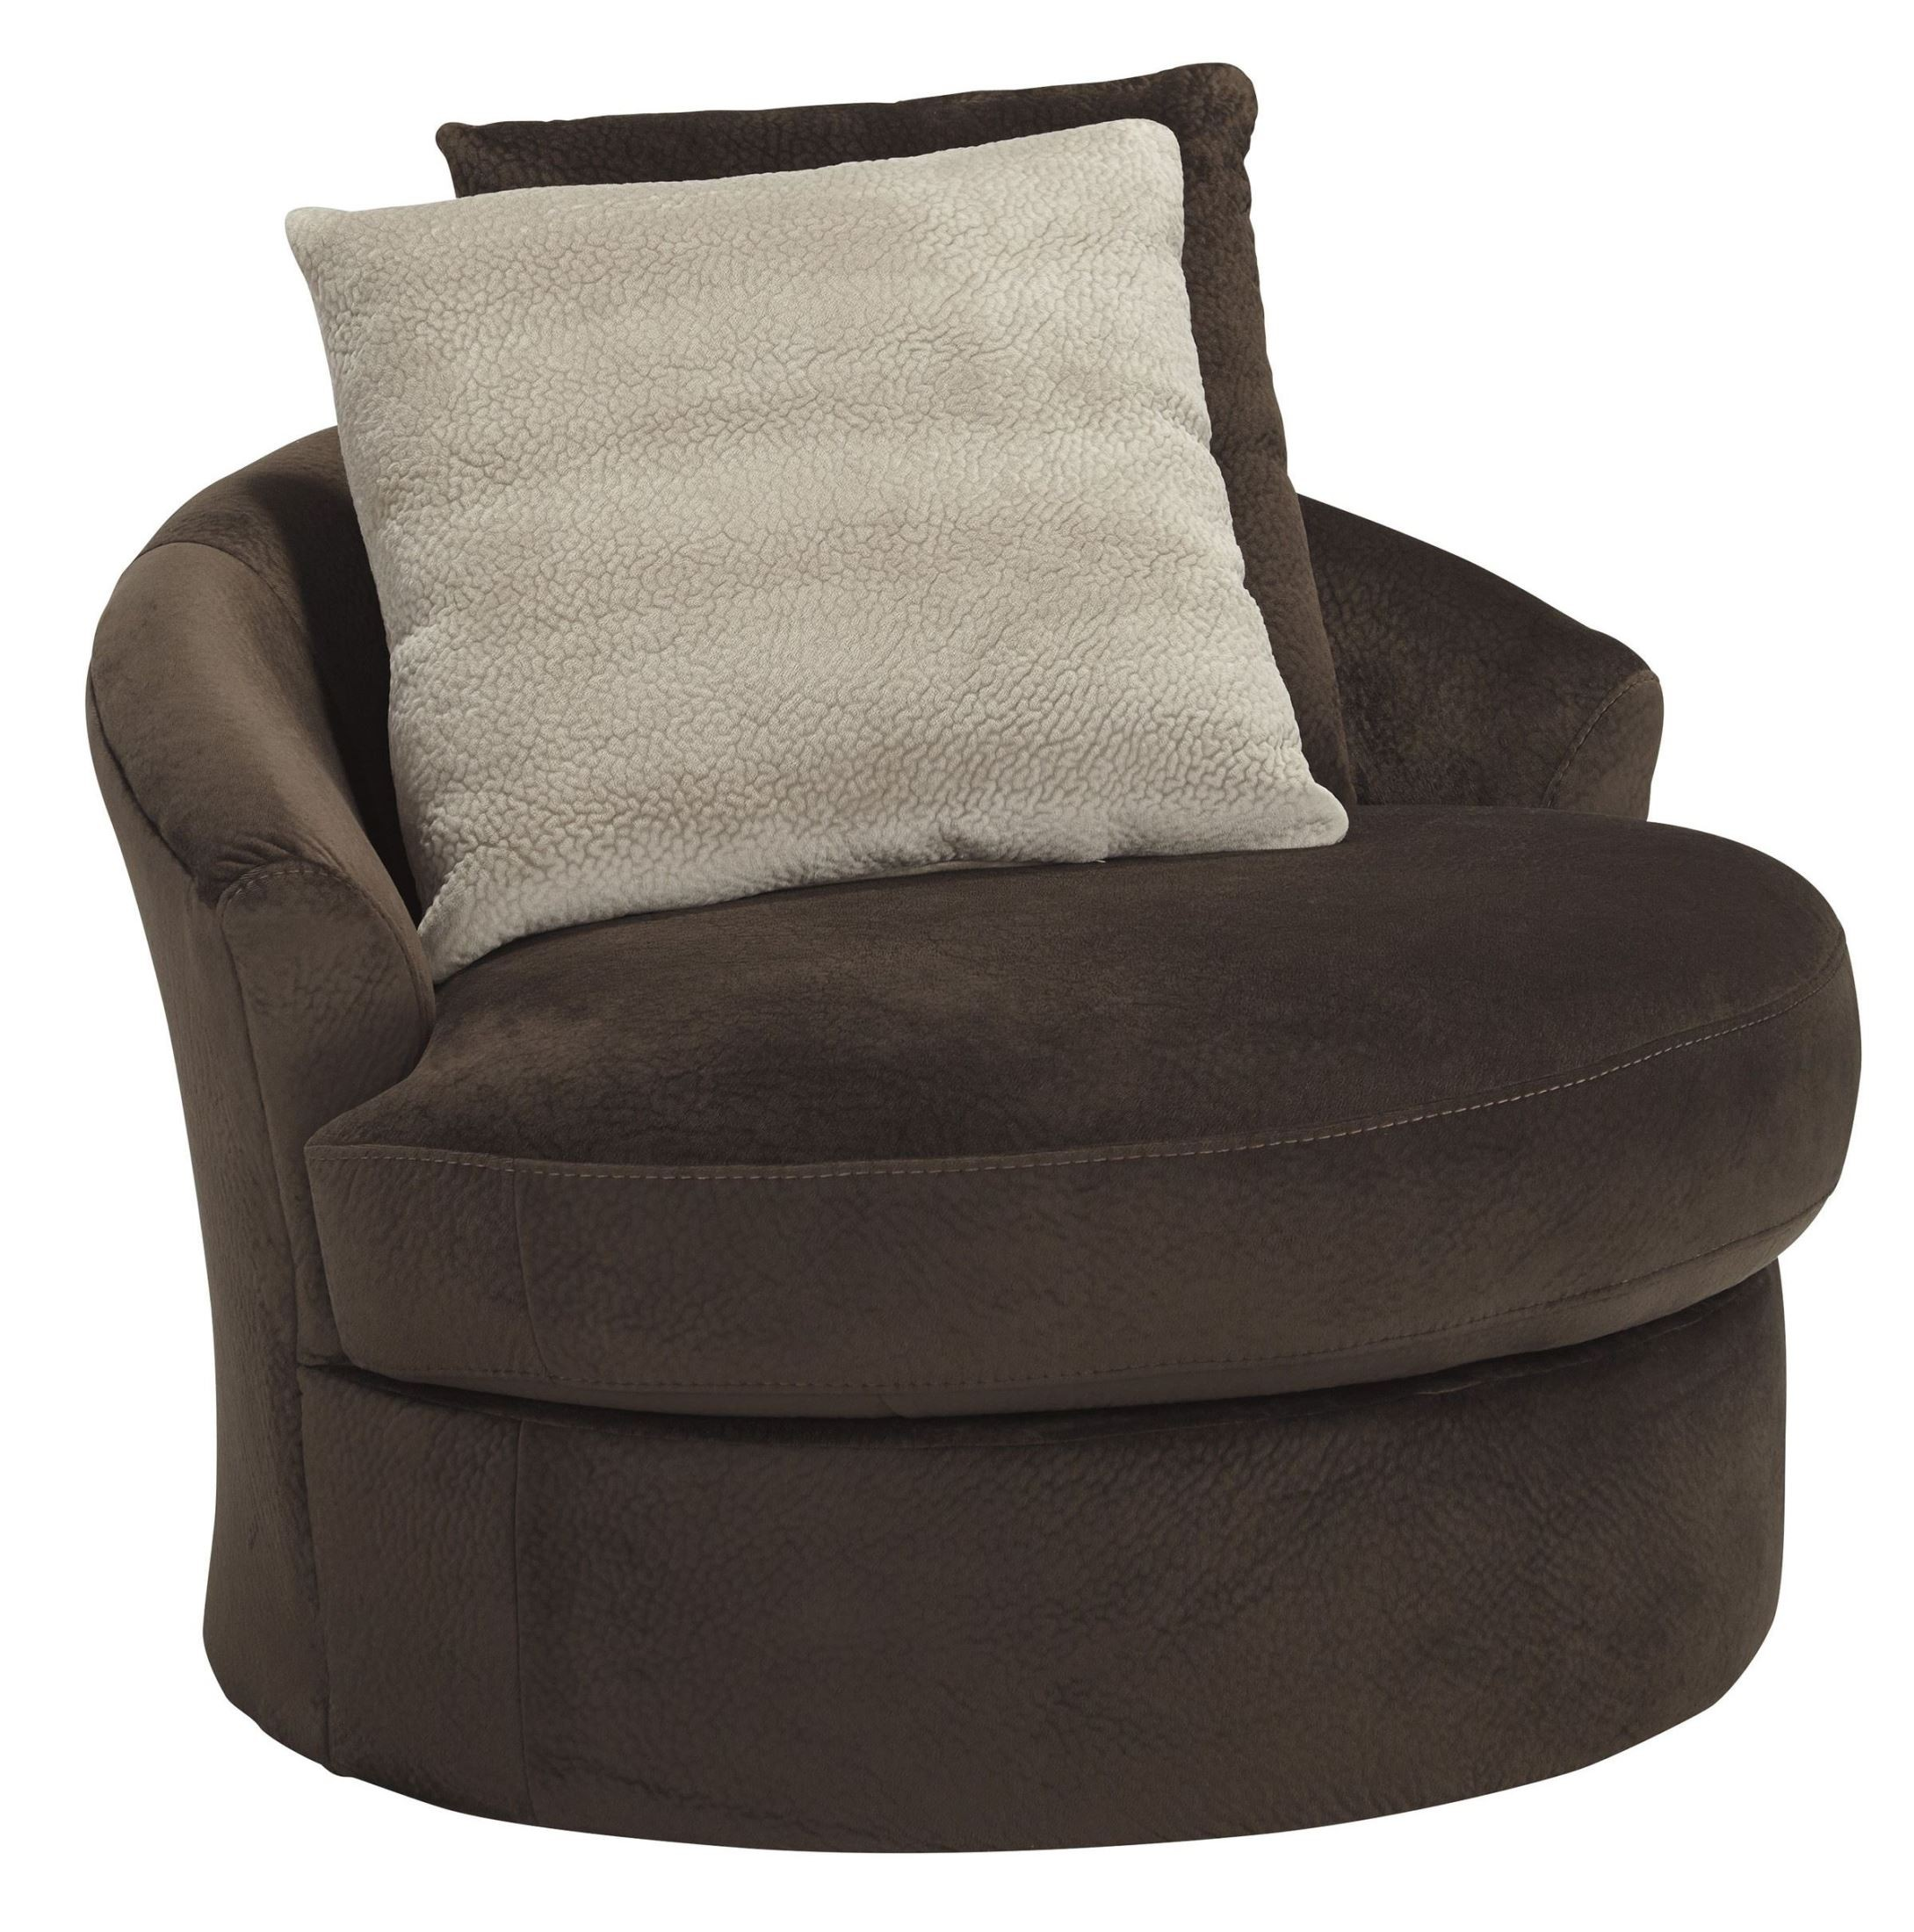 Swivel Accent Chair Dahlen Chocolate Swivel Accent Chair From Ashley 8830244